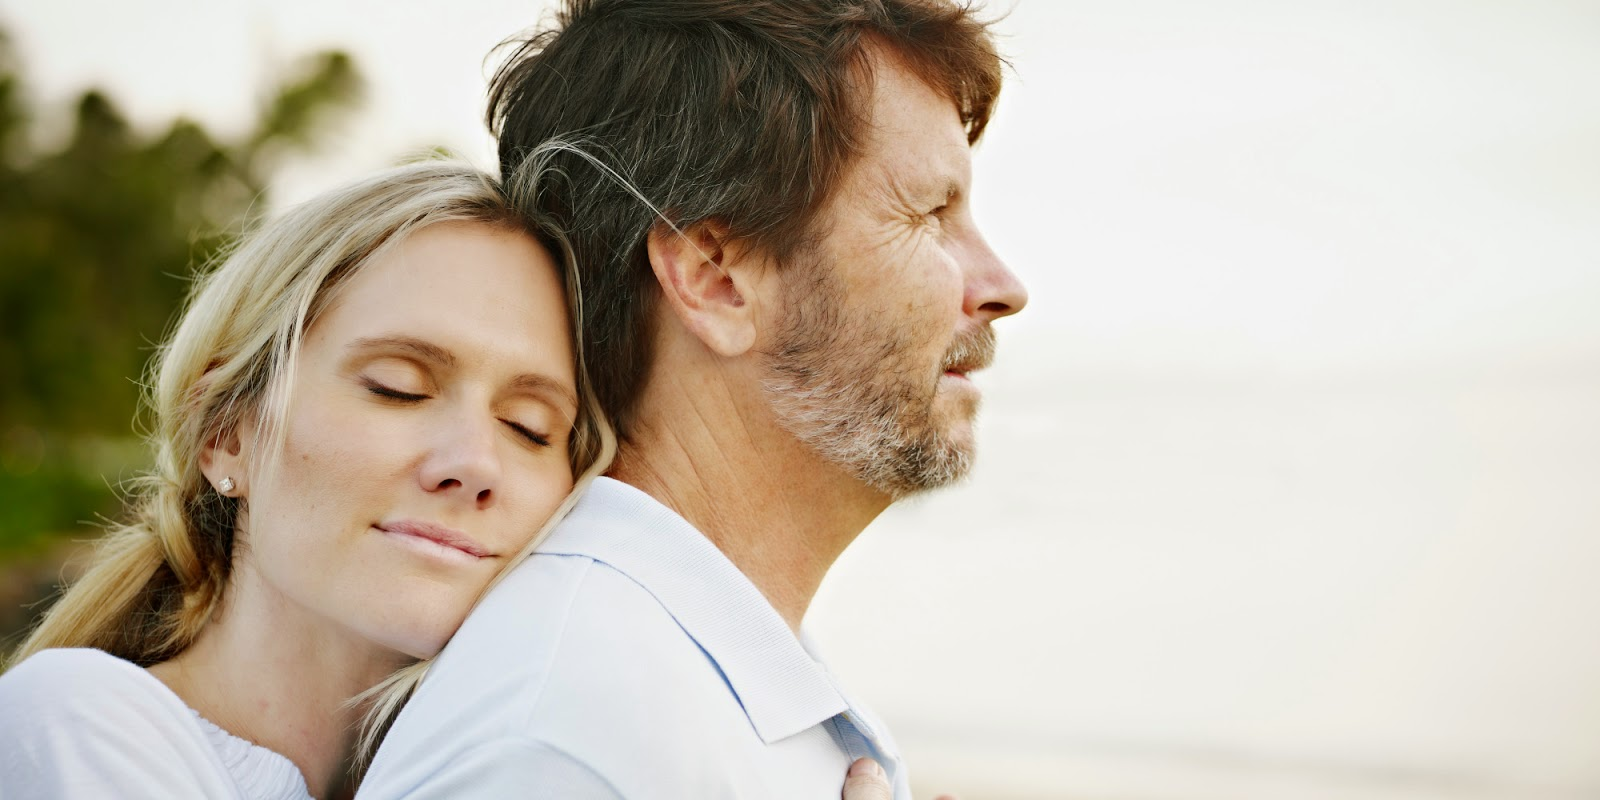 How to care your husband and make him happy